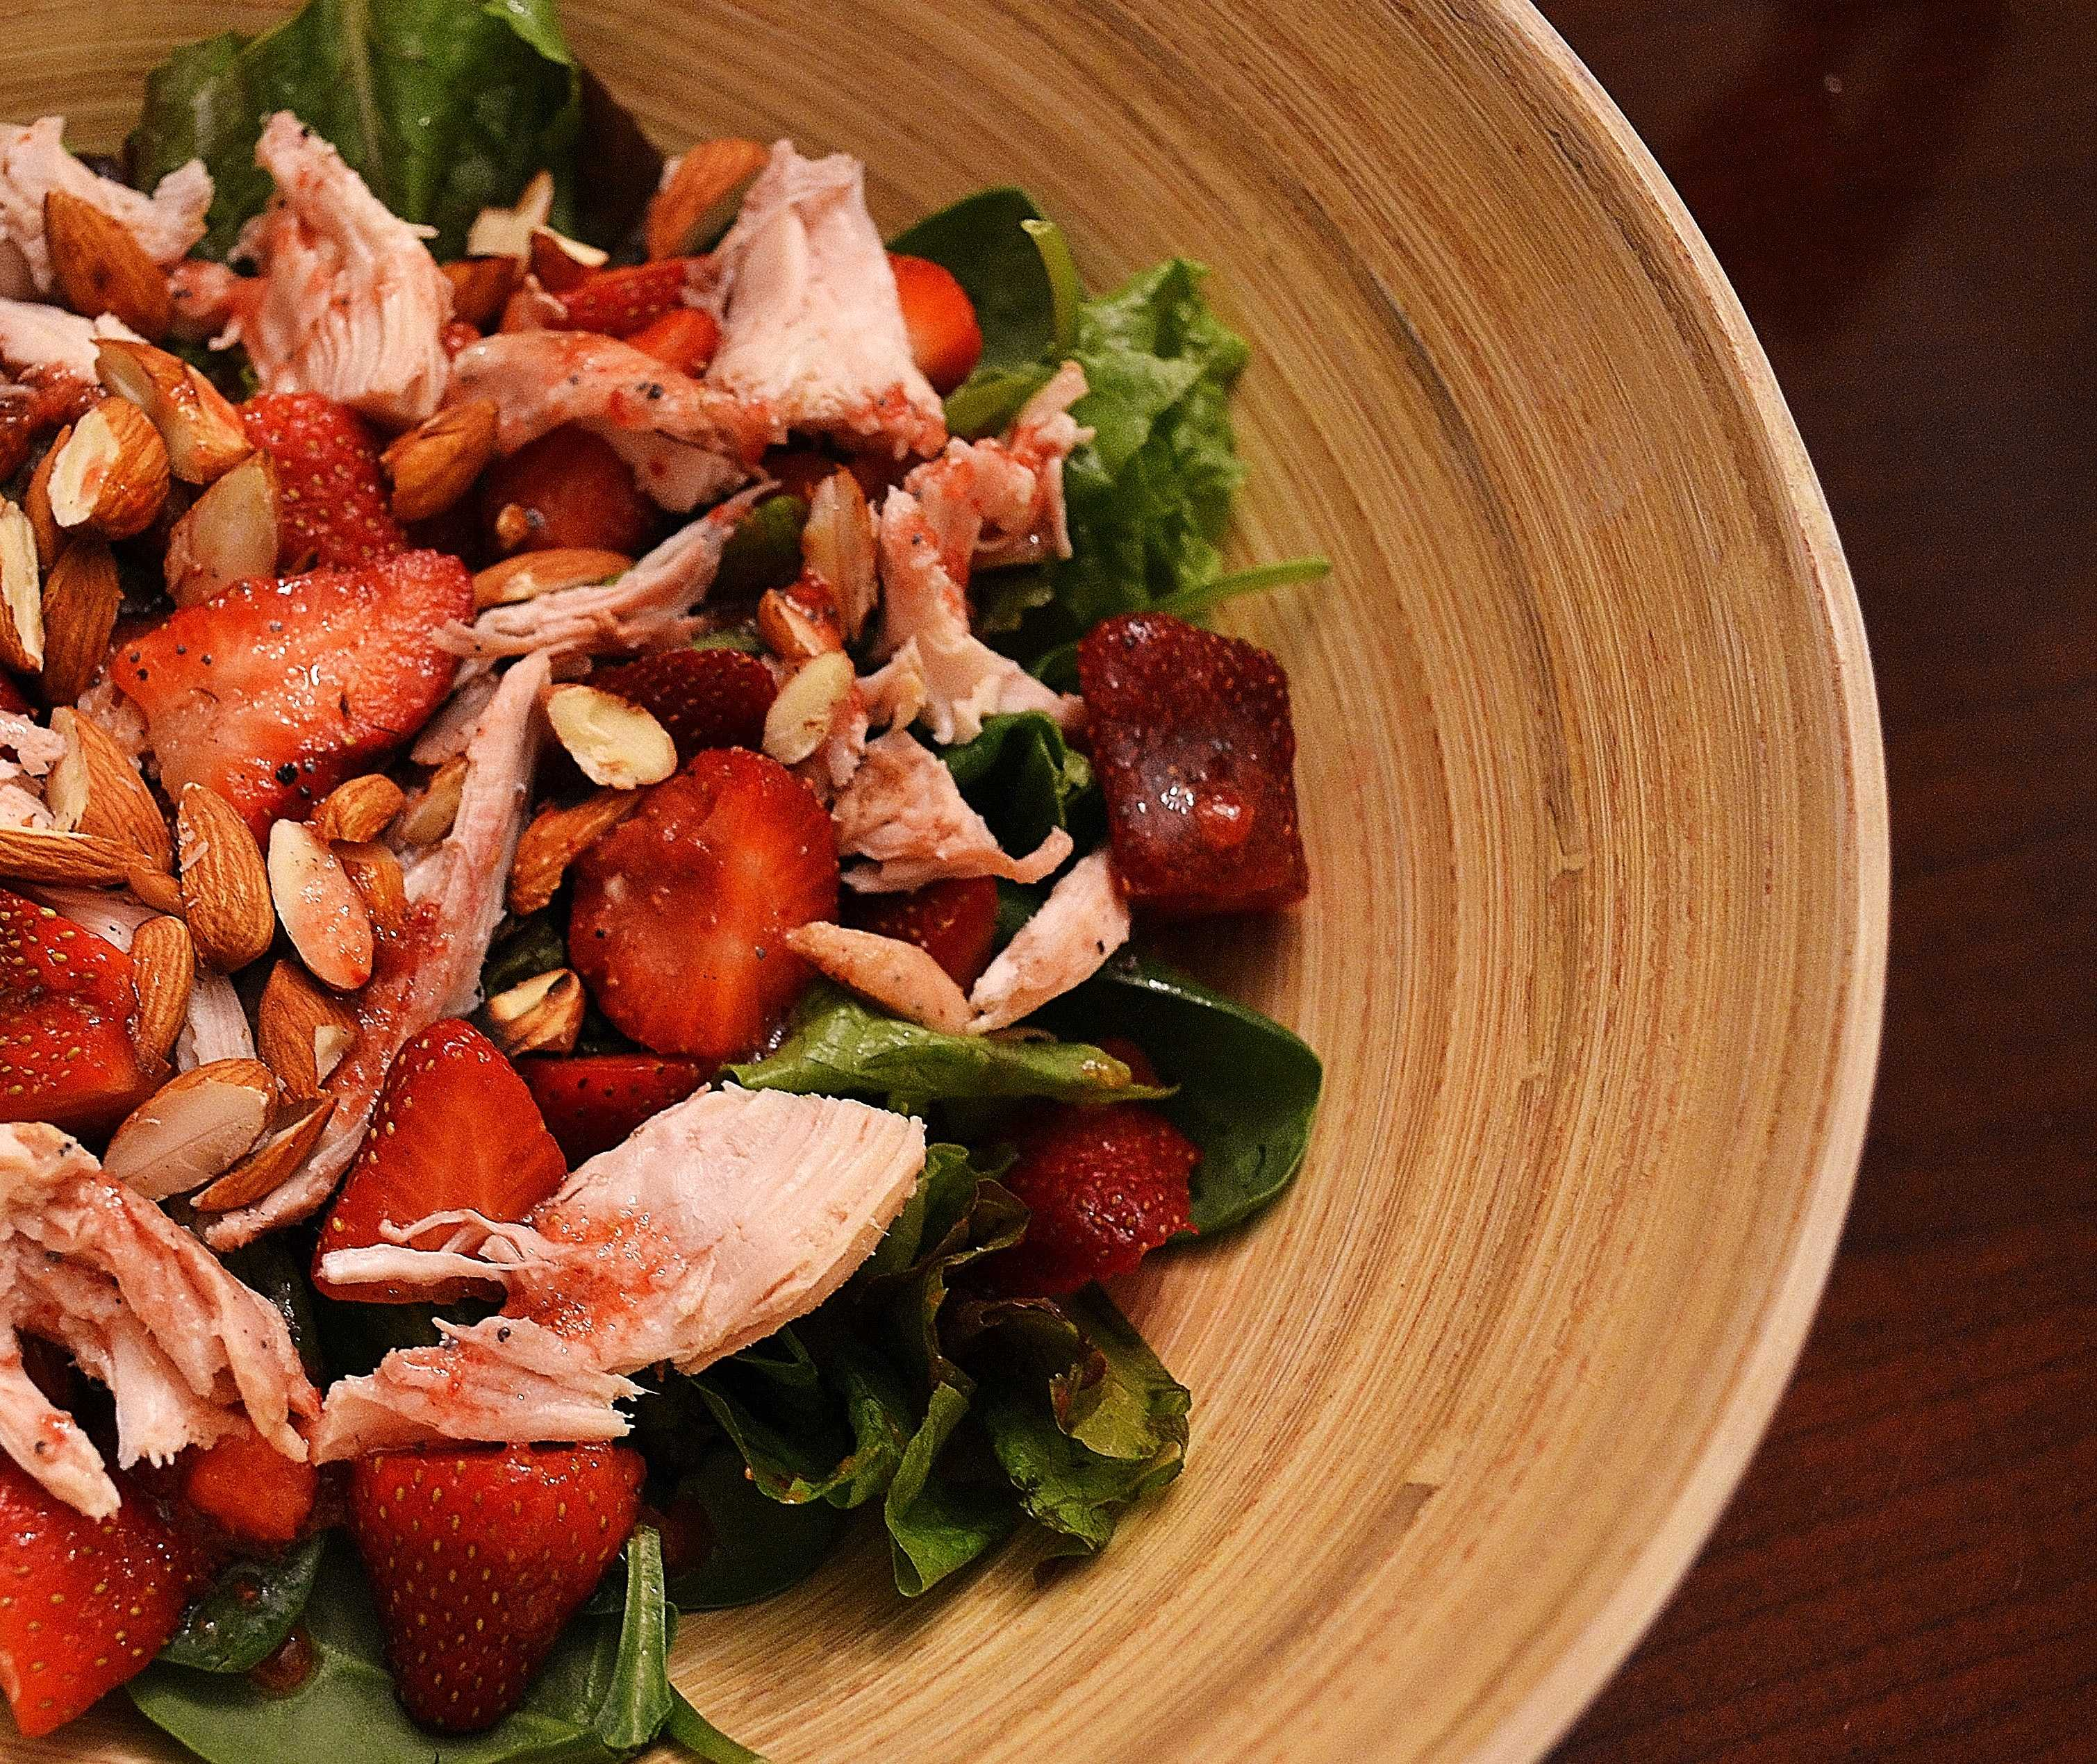 Strawberry and chicken salad I